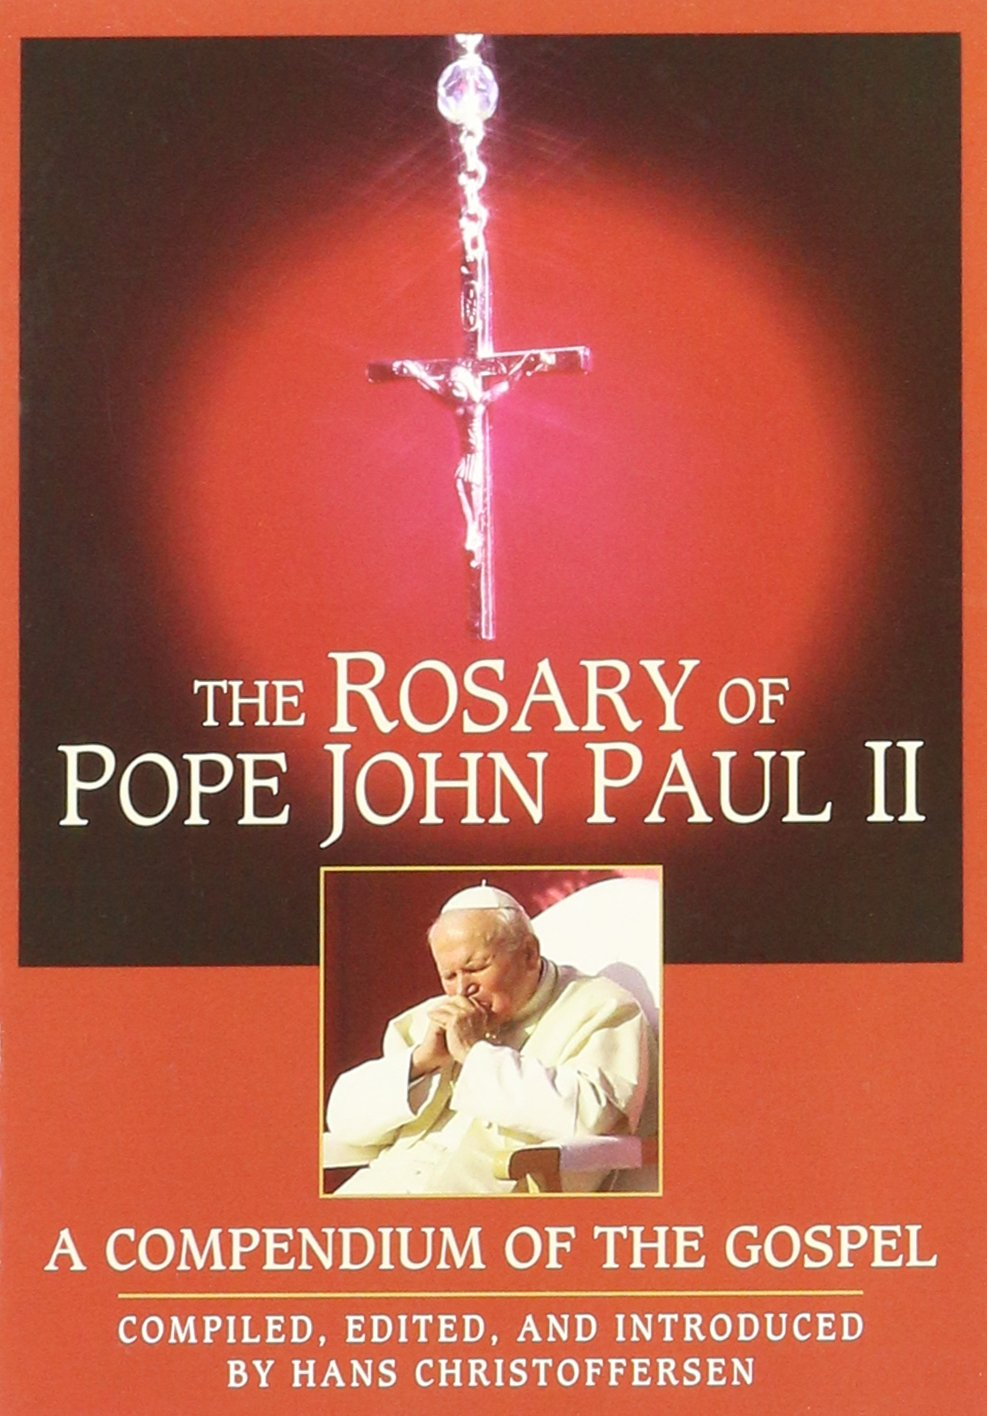 The Rosary of Pope John Paul II: A Compendium of the Gospel pdf